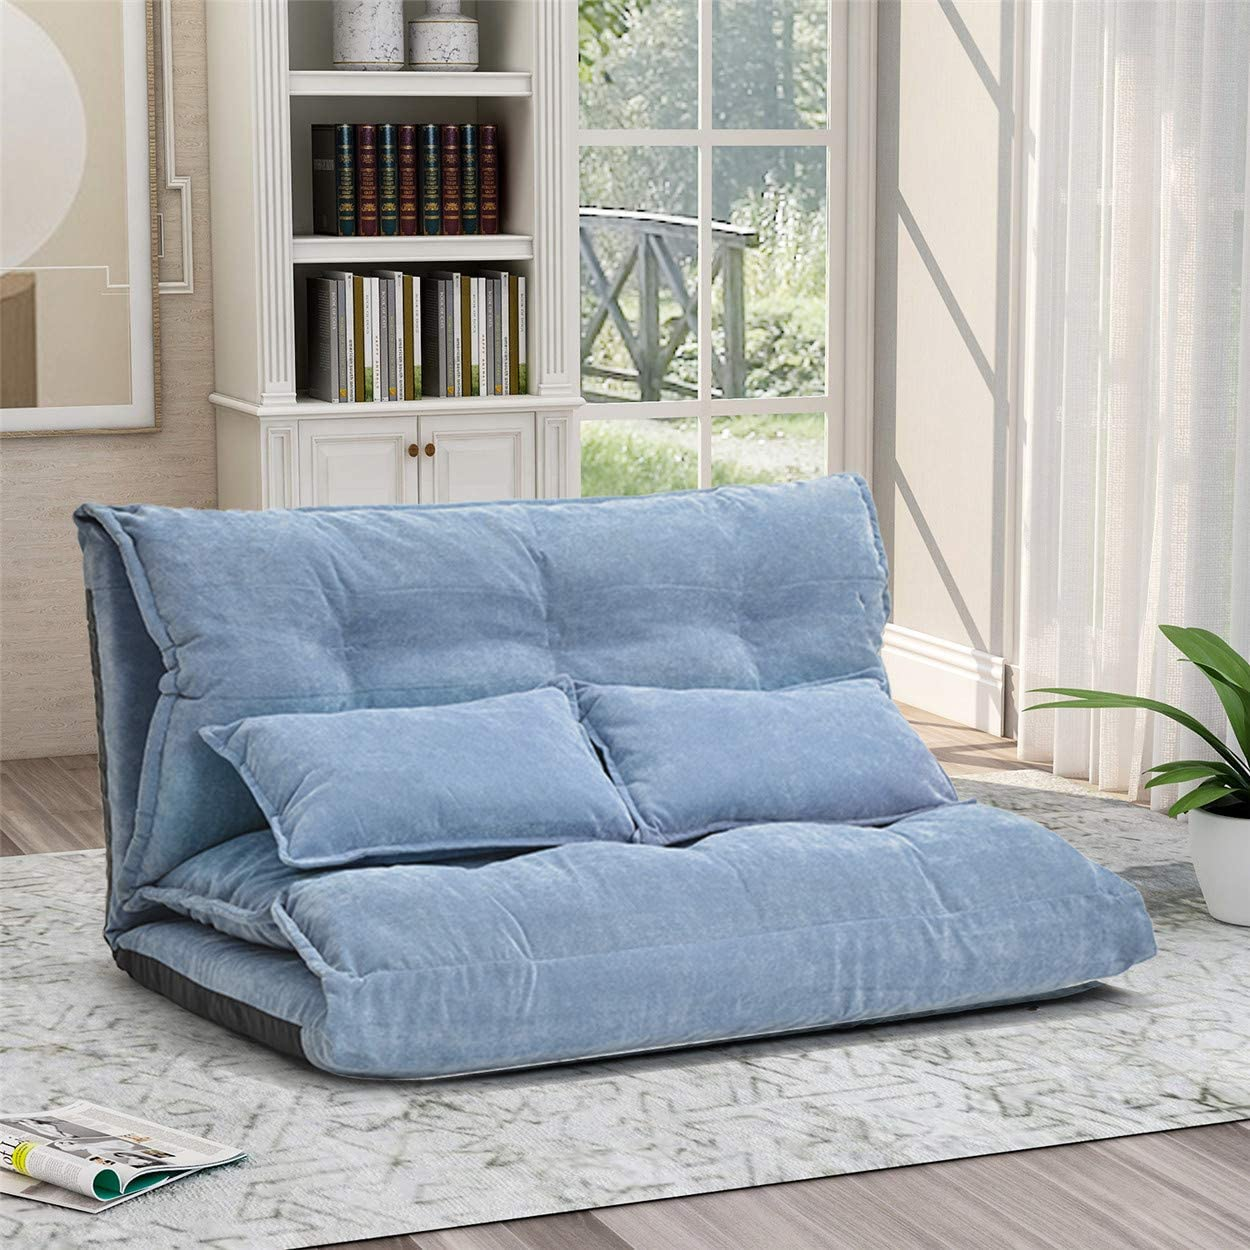 Floor Couch Lounge Foldable Lazy Sofa Bed 5 Angle Adjustment Leisure Cushion Seating with Two Pillows for Living Room and Bedroom Light Blue